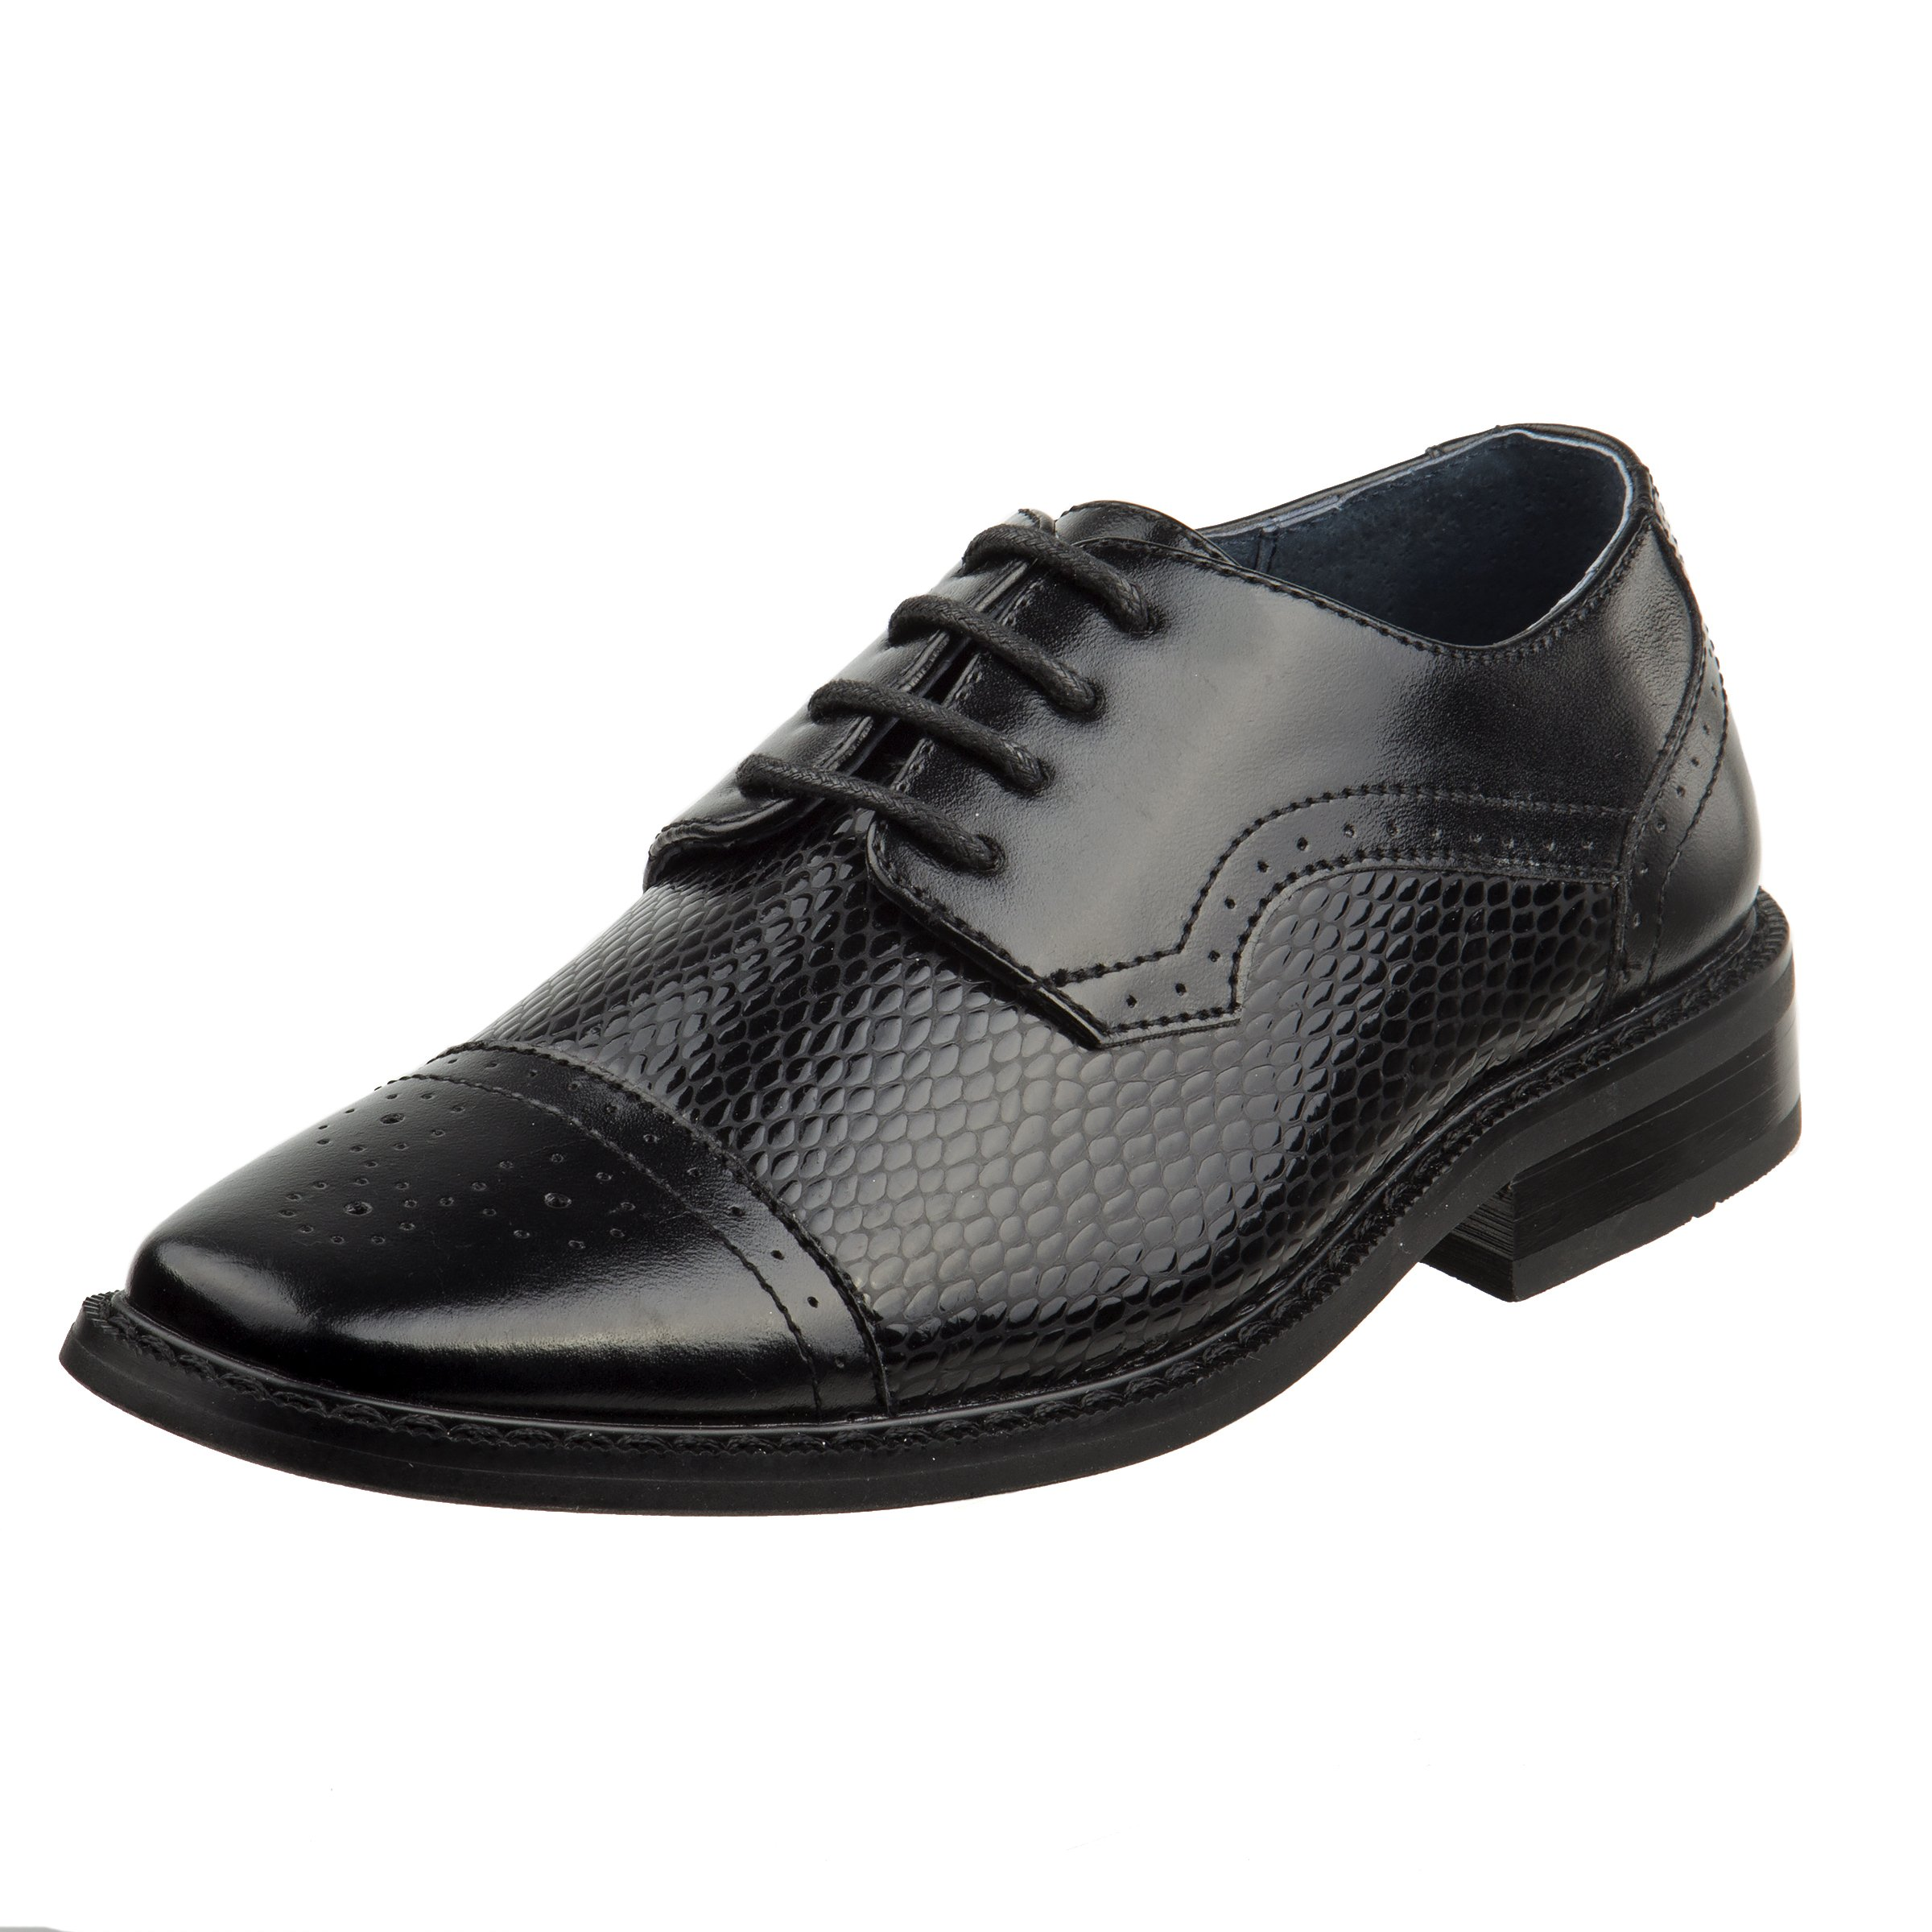 Joseph Allen Boys Wing Tip Perforated Oxford Dress Shoe (Toddler, Little Kid, Big Kid) (2 M US Little Kid, Black Woven)'